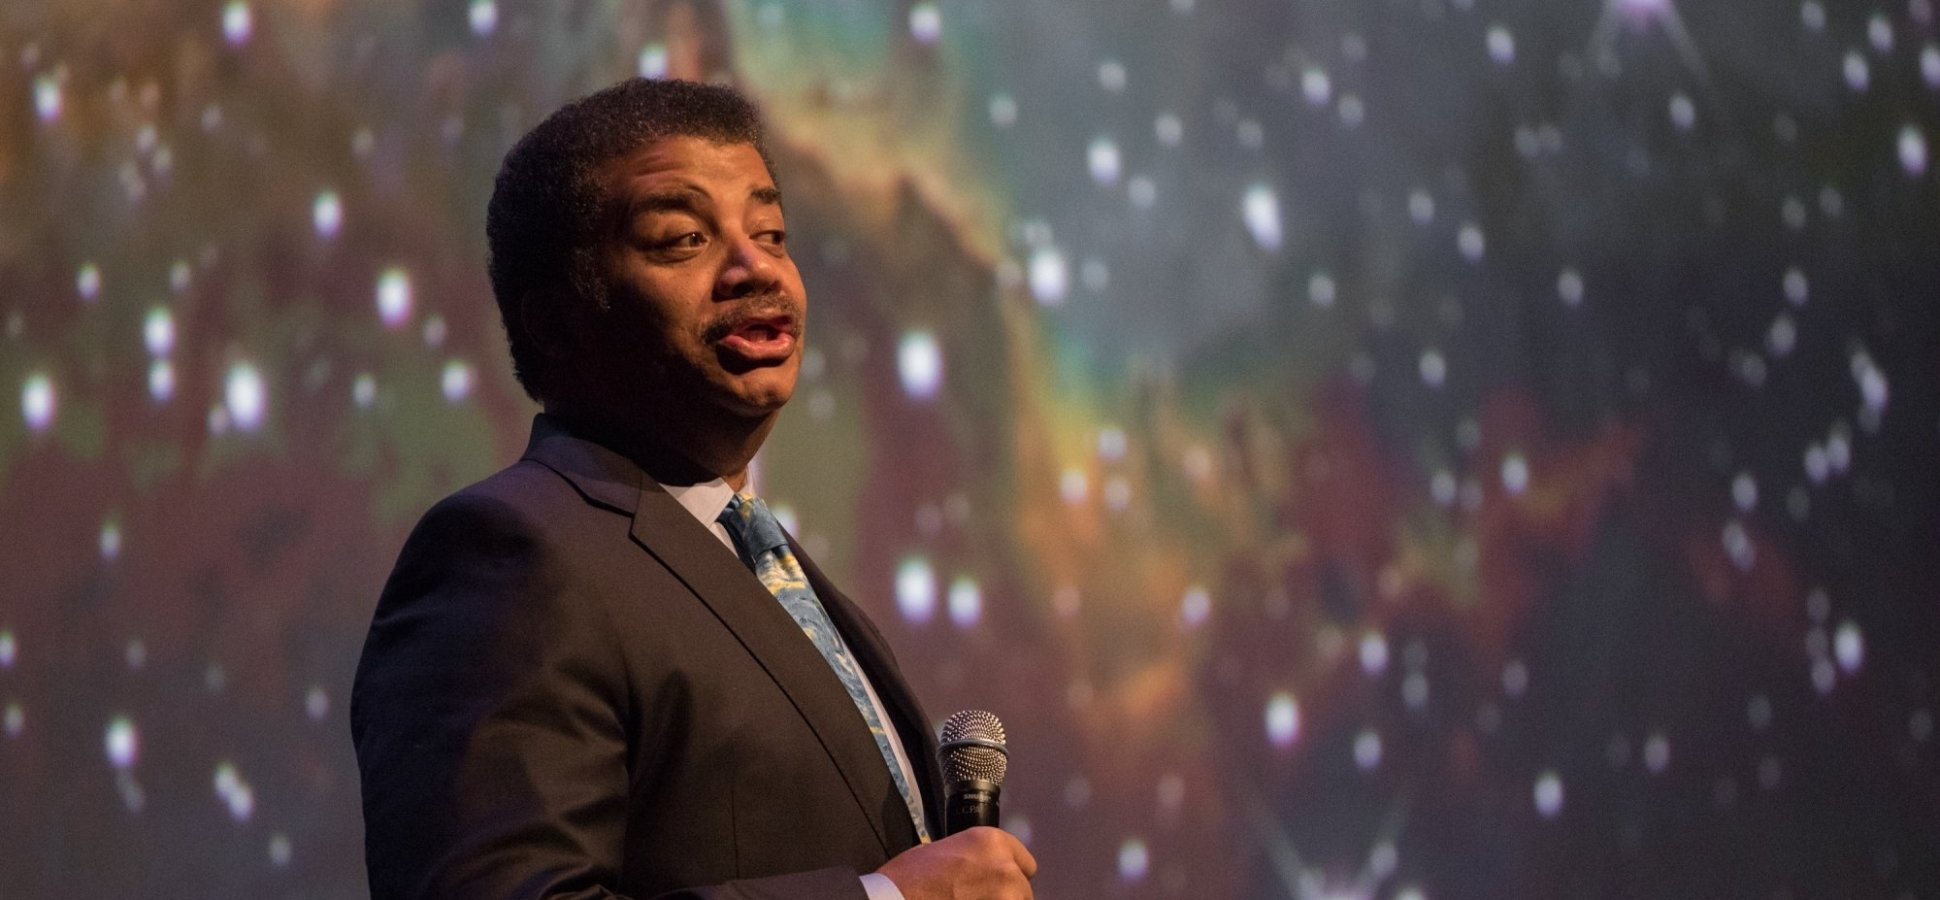 Neil deGrasse Tyson's Tweet About Mass Shootings Was Bad. His Apology May Have Been Worse.